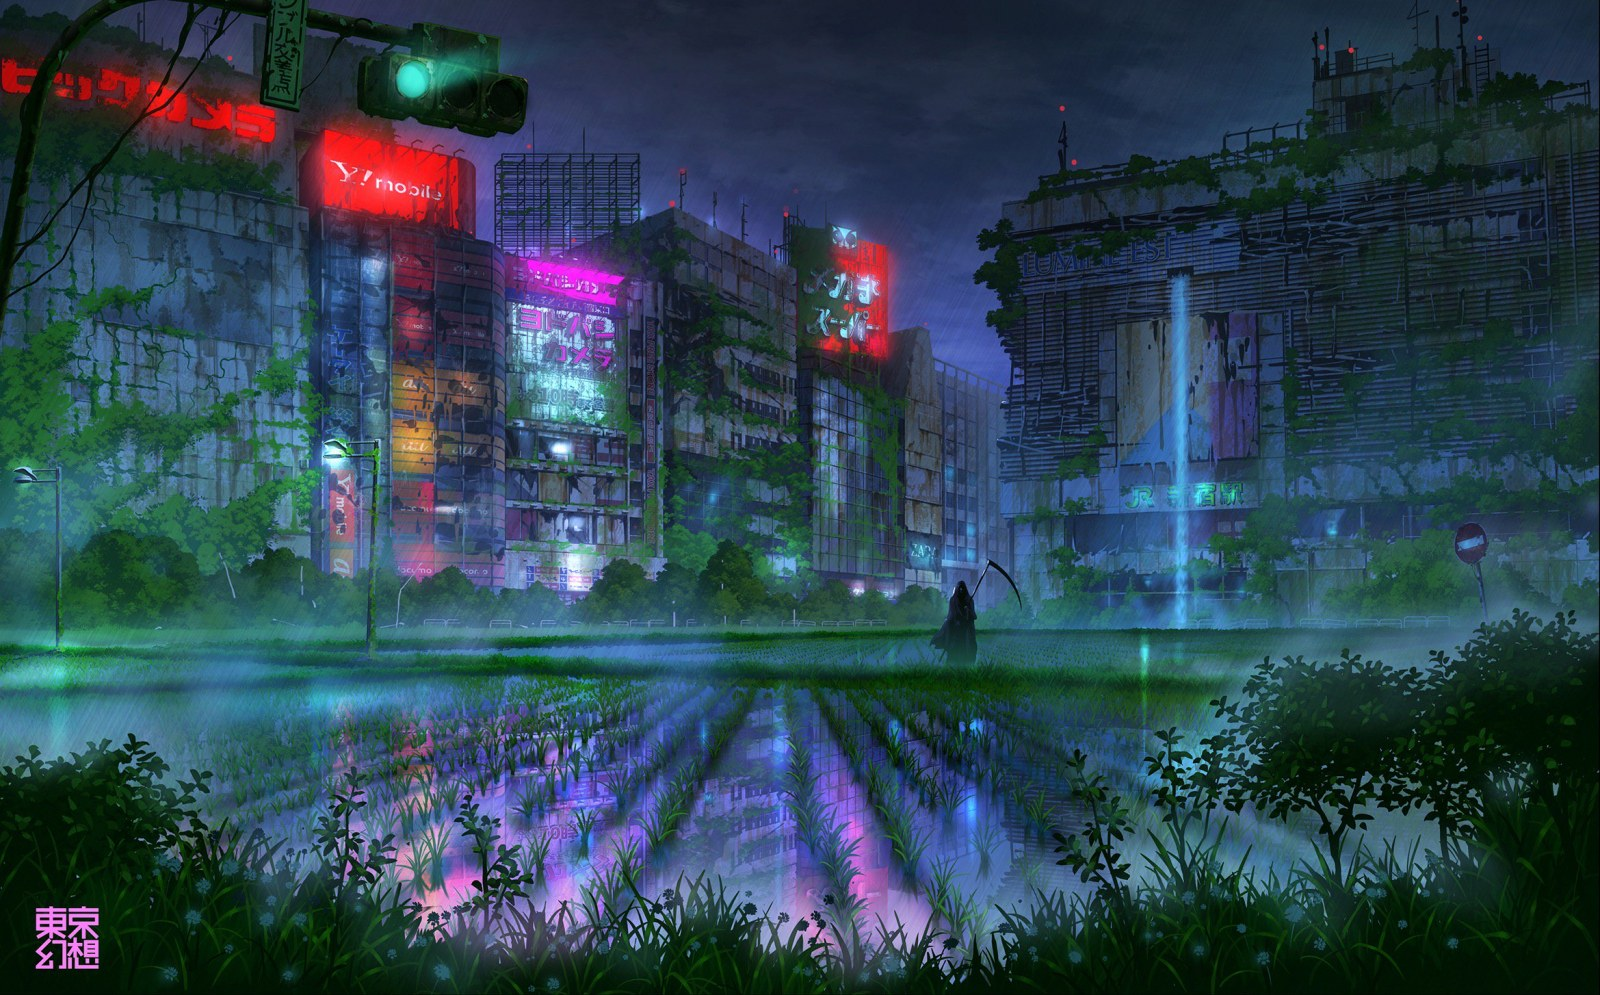 Tokyo Genso's post-apocalyptic vision of Tokyo